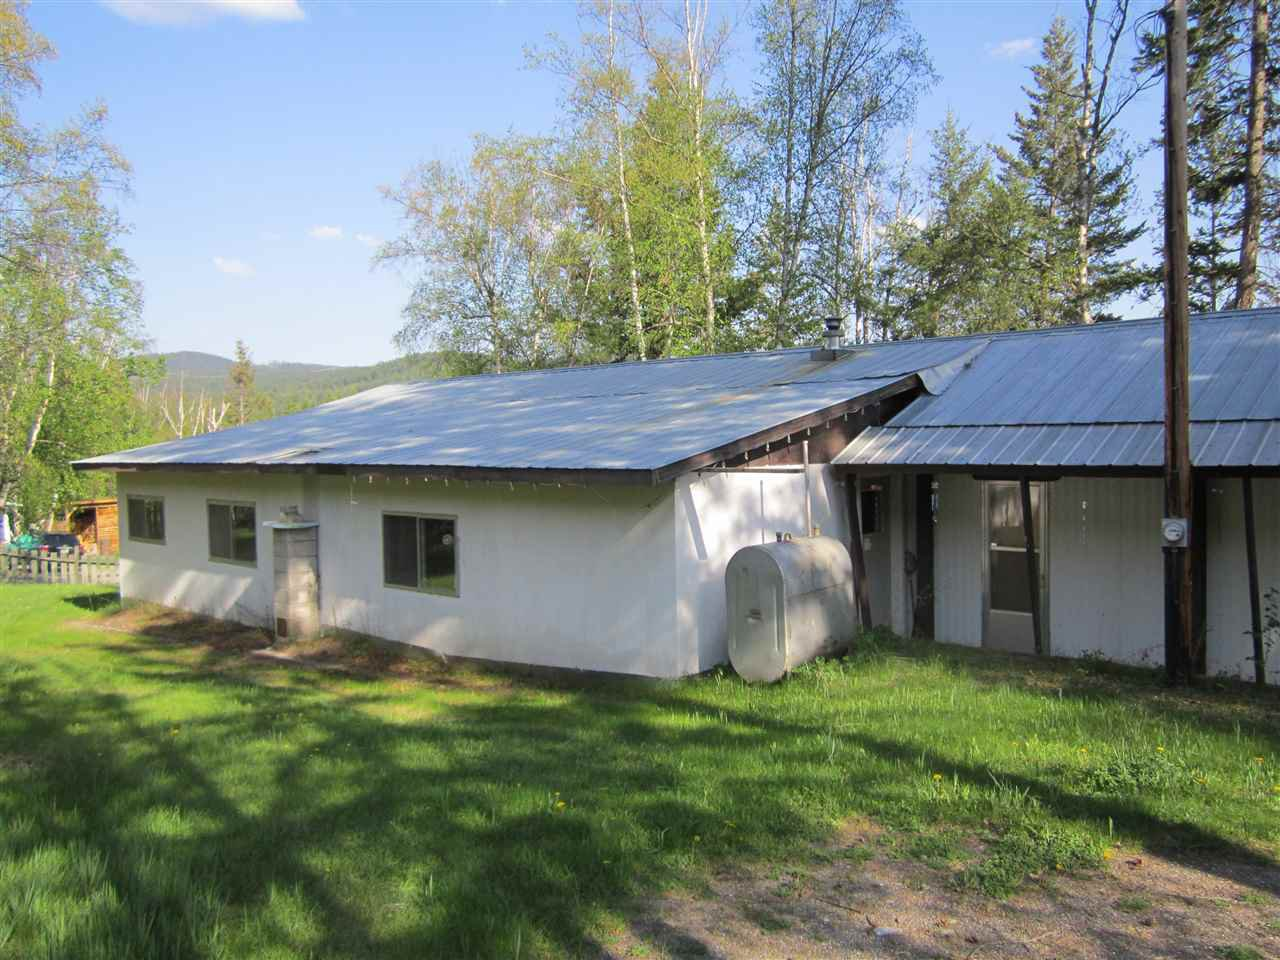 Main Photo: 6793 LAGERQUIST Road: McLeese Lake Manufactured Home for sale (Williams Lake (Zone 27))  : MLS®# R2126020